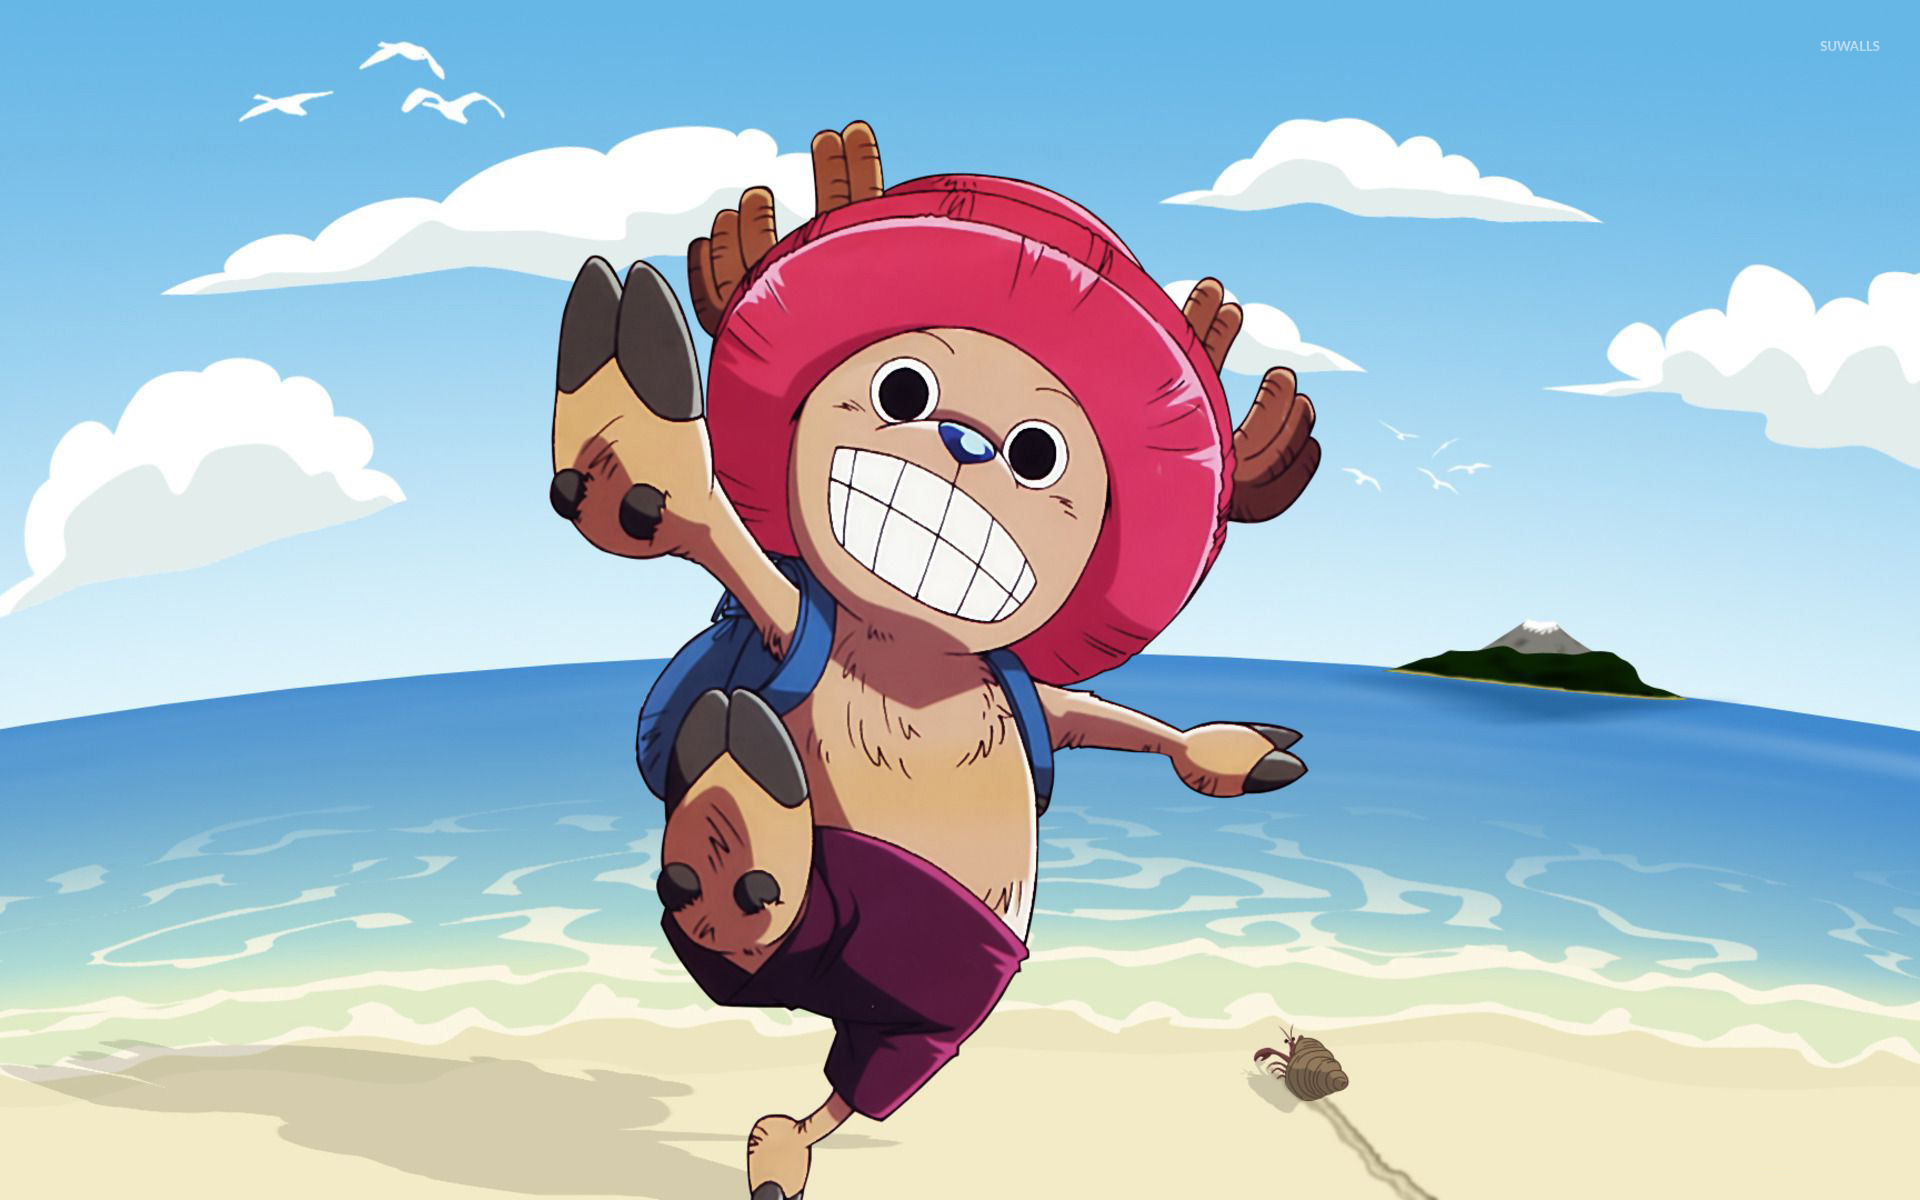 Chopper One Piece Wallpaper 1920x1200 Download Hd Wallpaper Wallpapertip